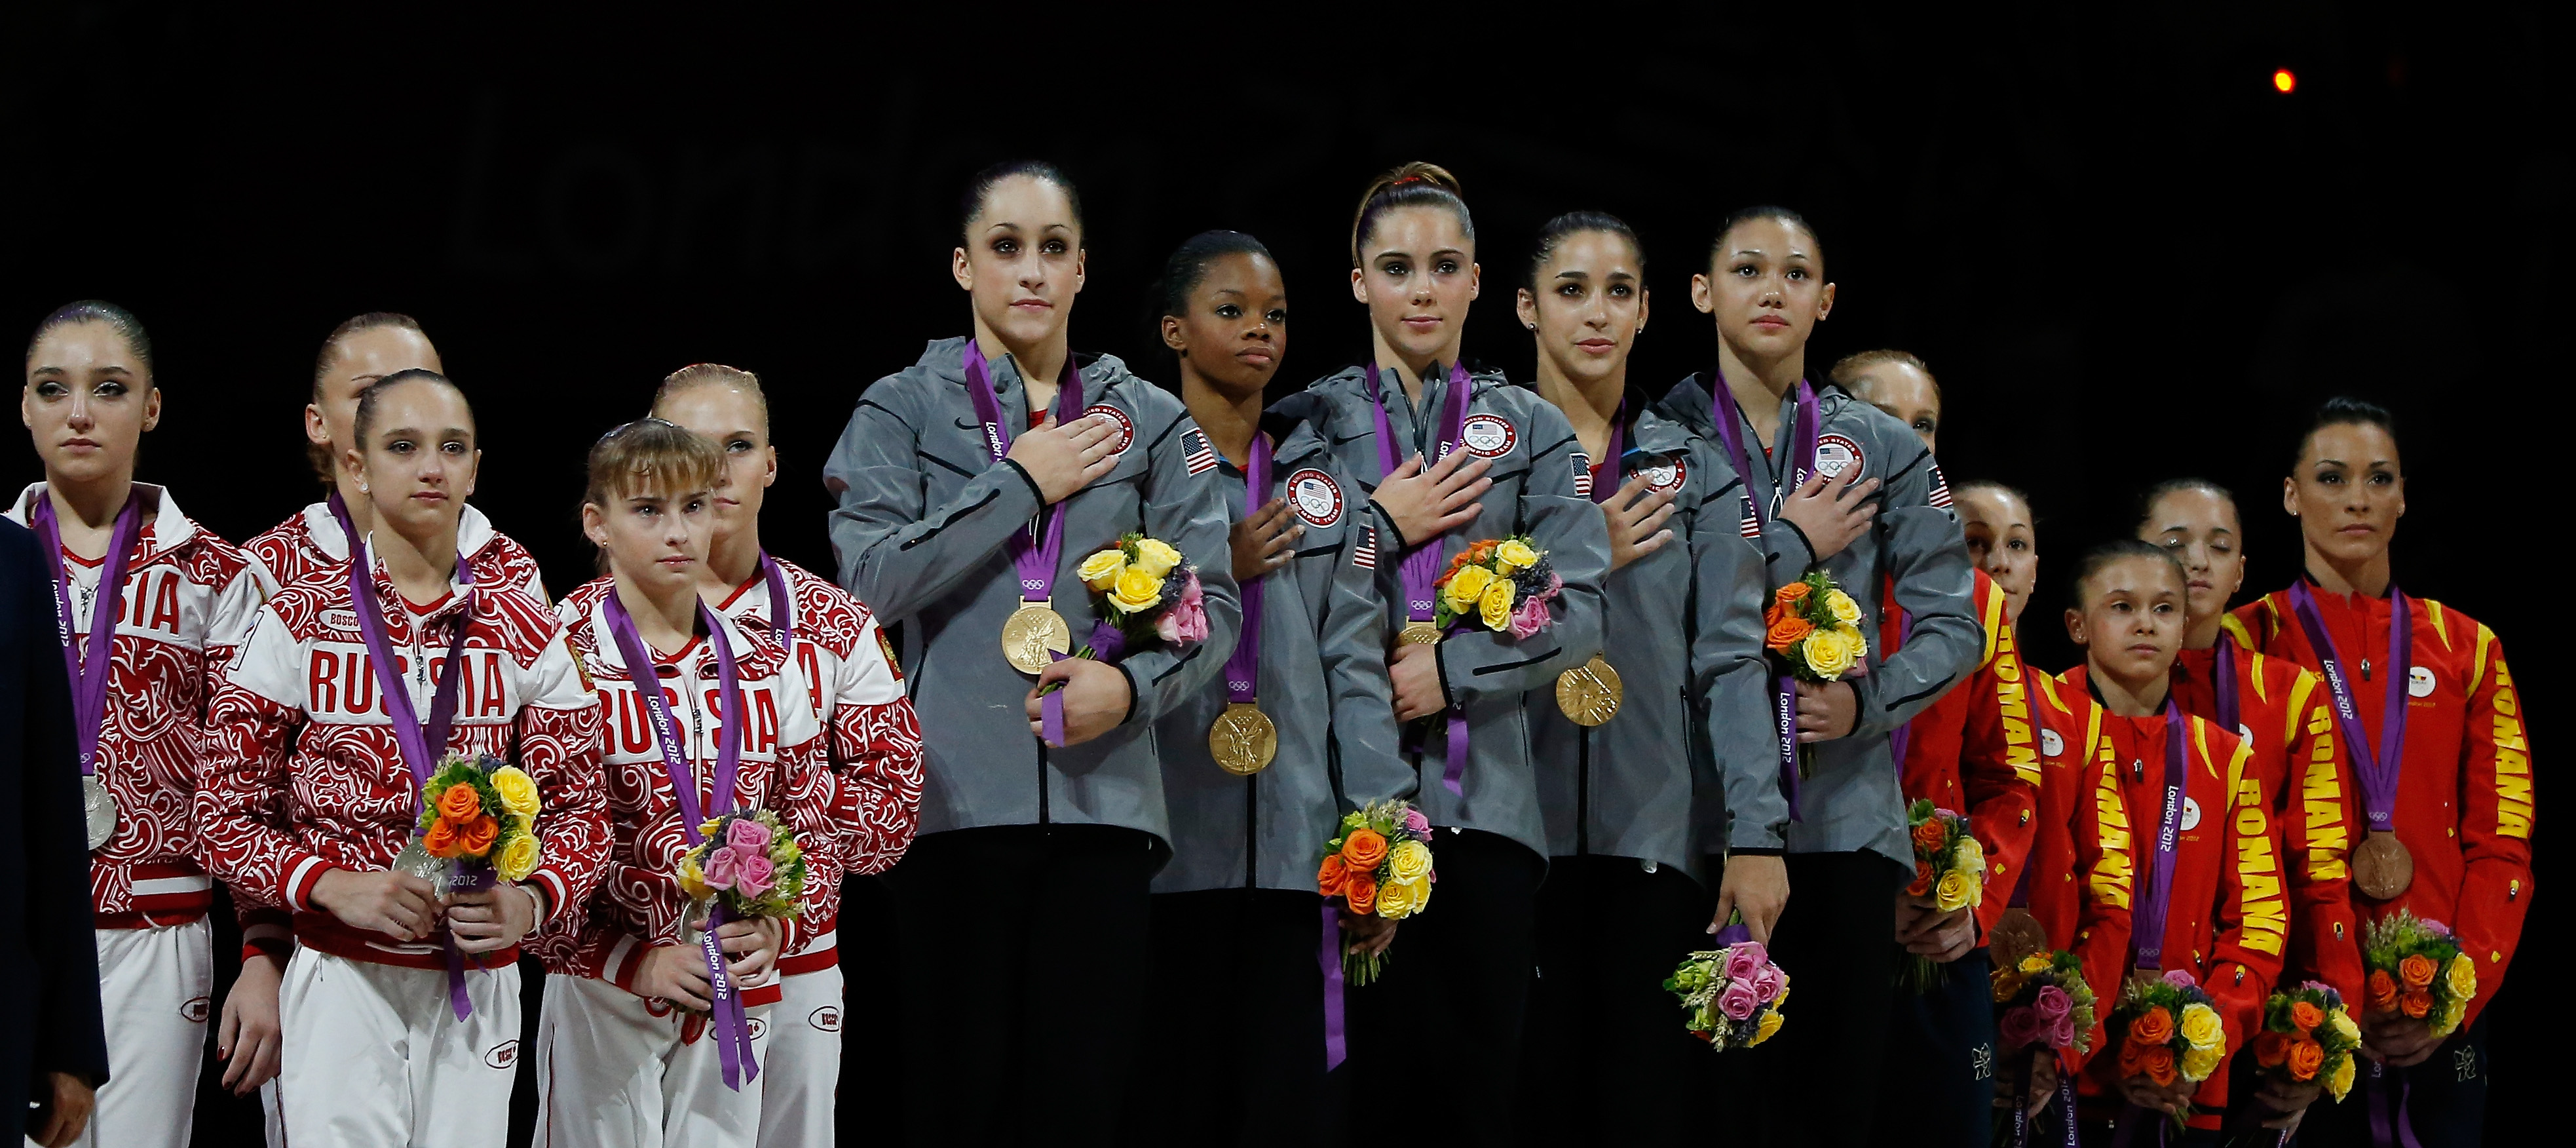 Silver medalists Russia, gold medalists United States with Aly Raisman second from right, and bronze medalists Romania pose of the podium after the Artistic Gymnastics Women's Team final on Day 4 of the London 2012 Olympic Games at North Greenwich Arena on July 31, 2012 in London.